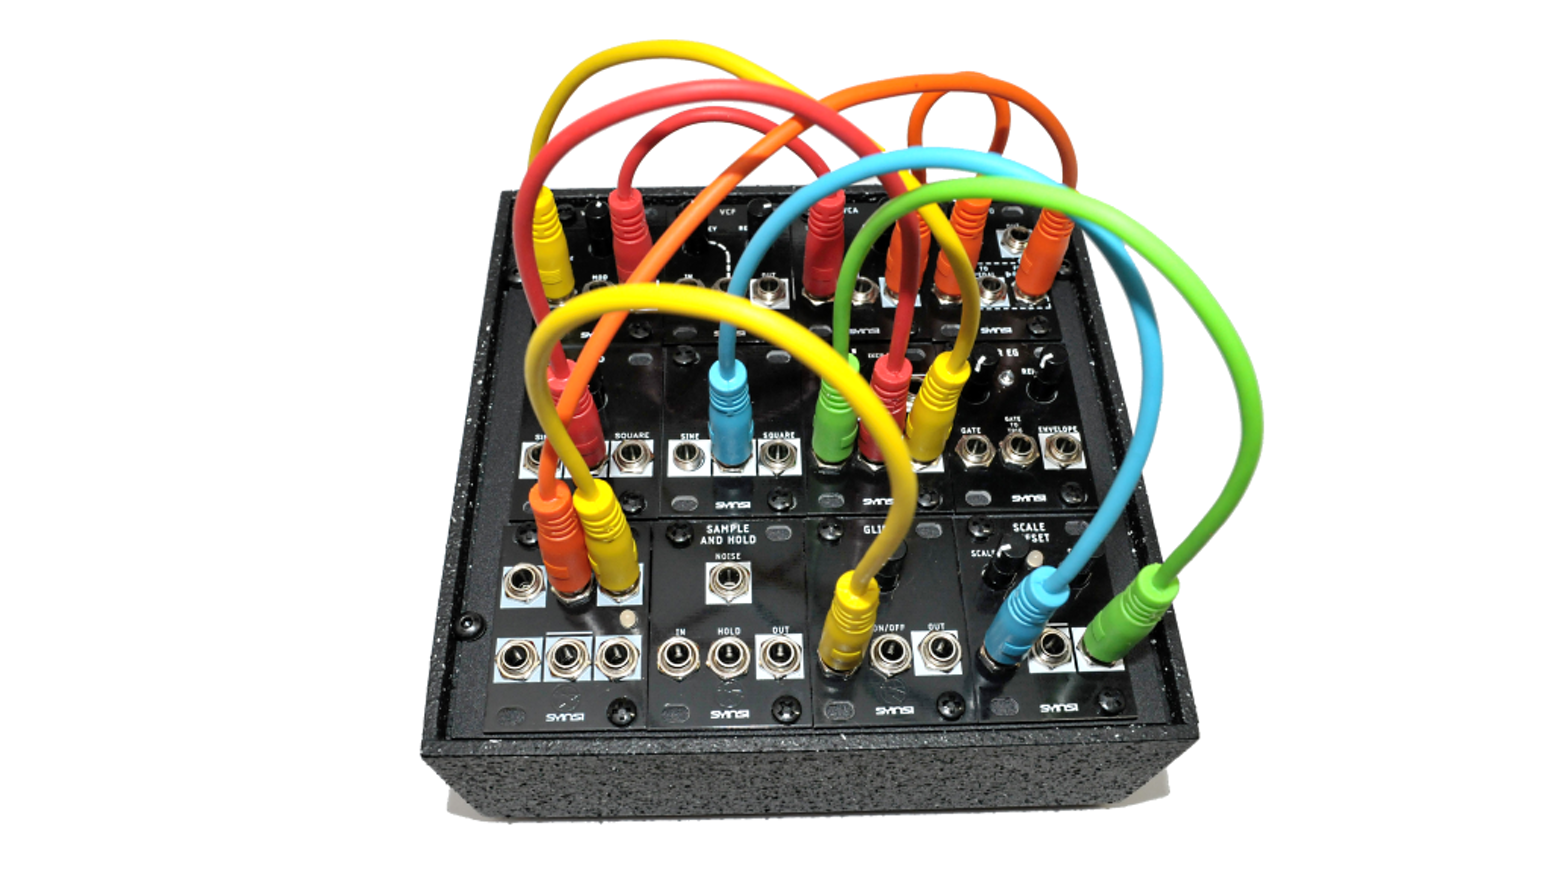 A complete analog synthesizer with the smallest modular synthesizer format.